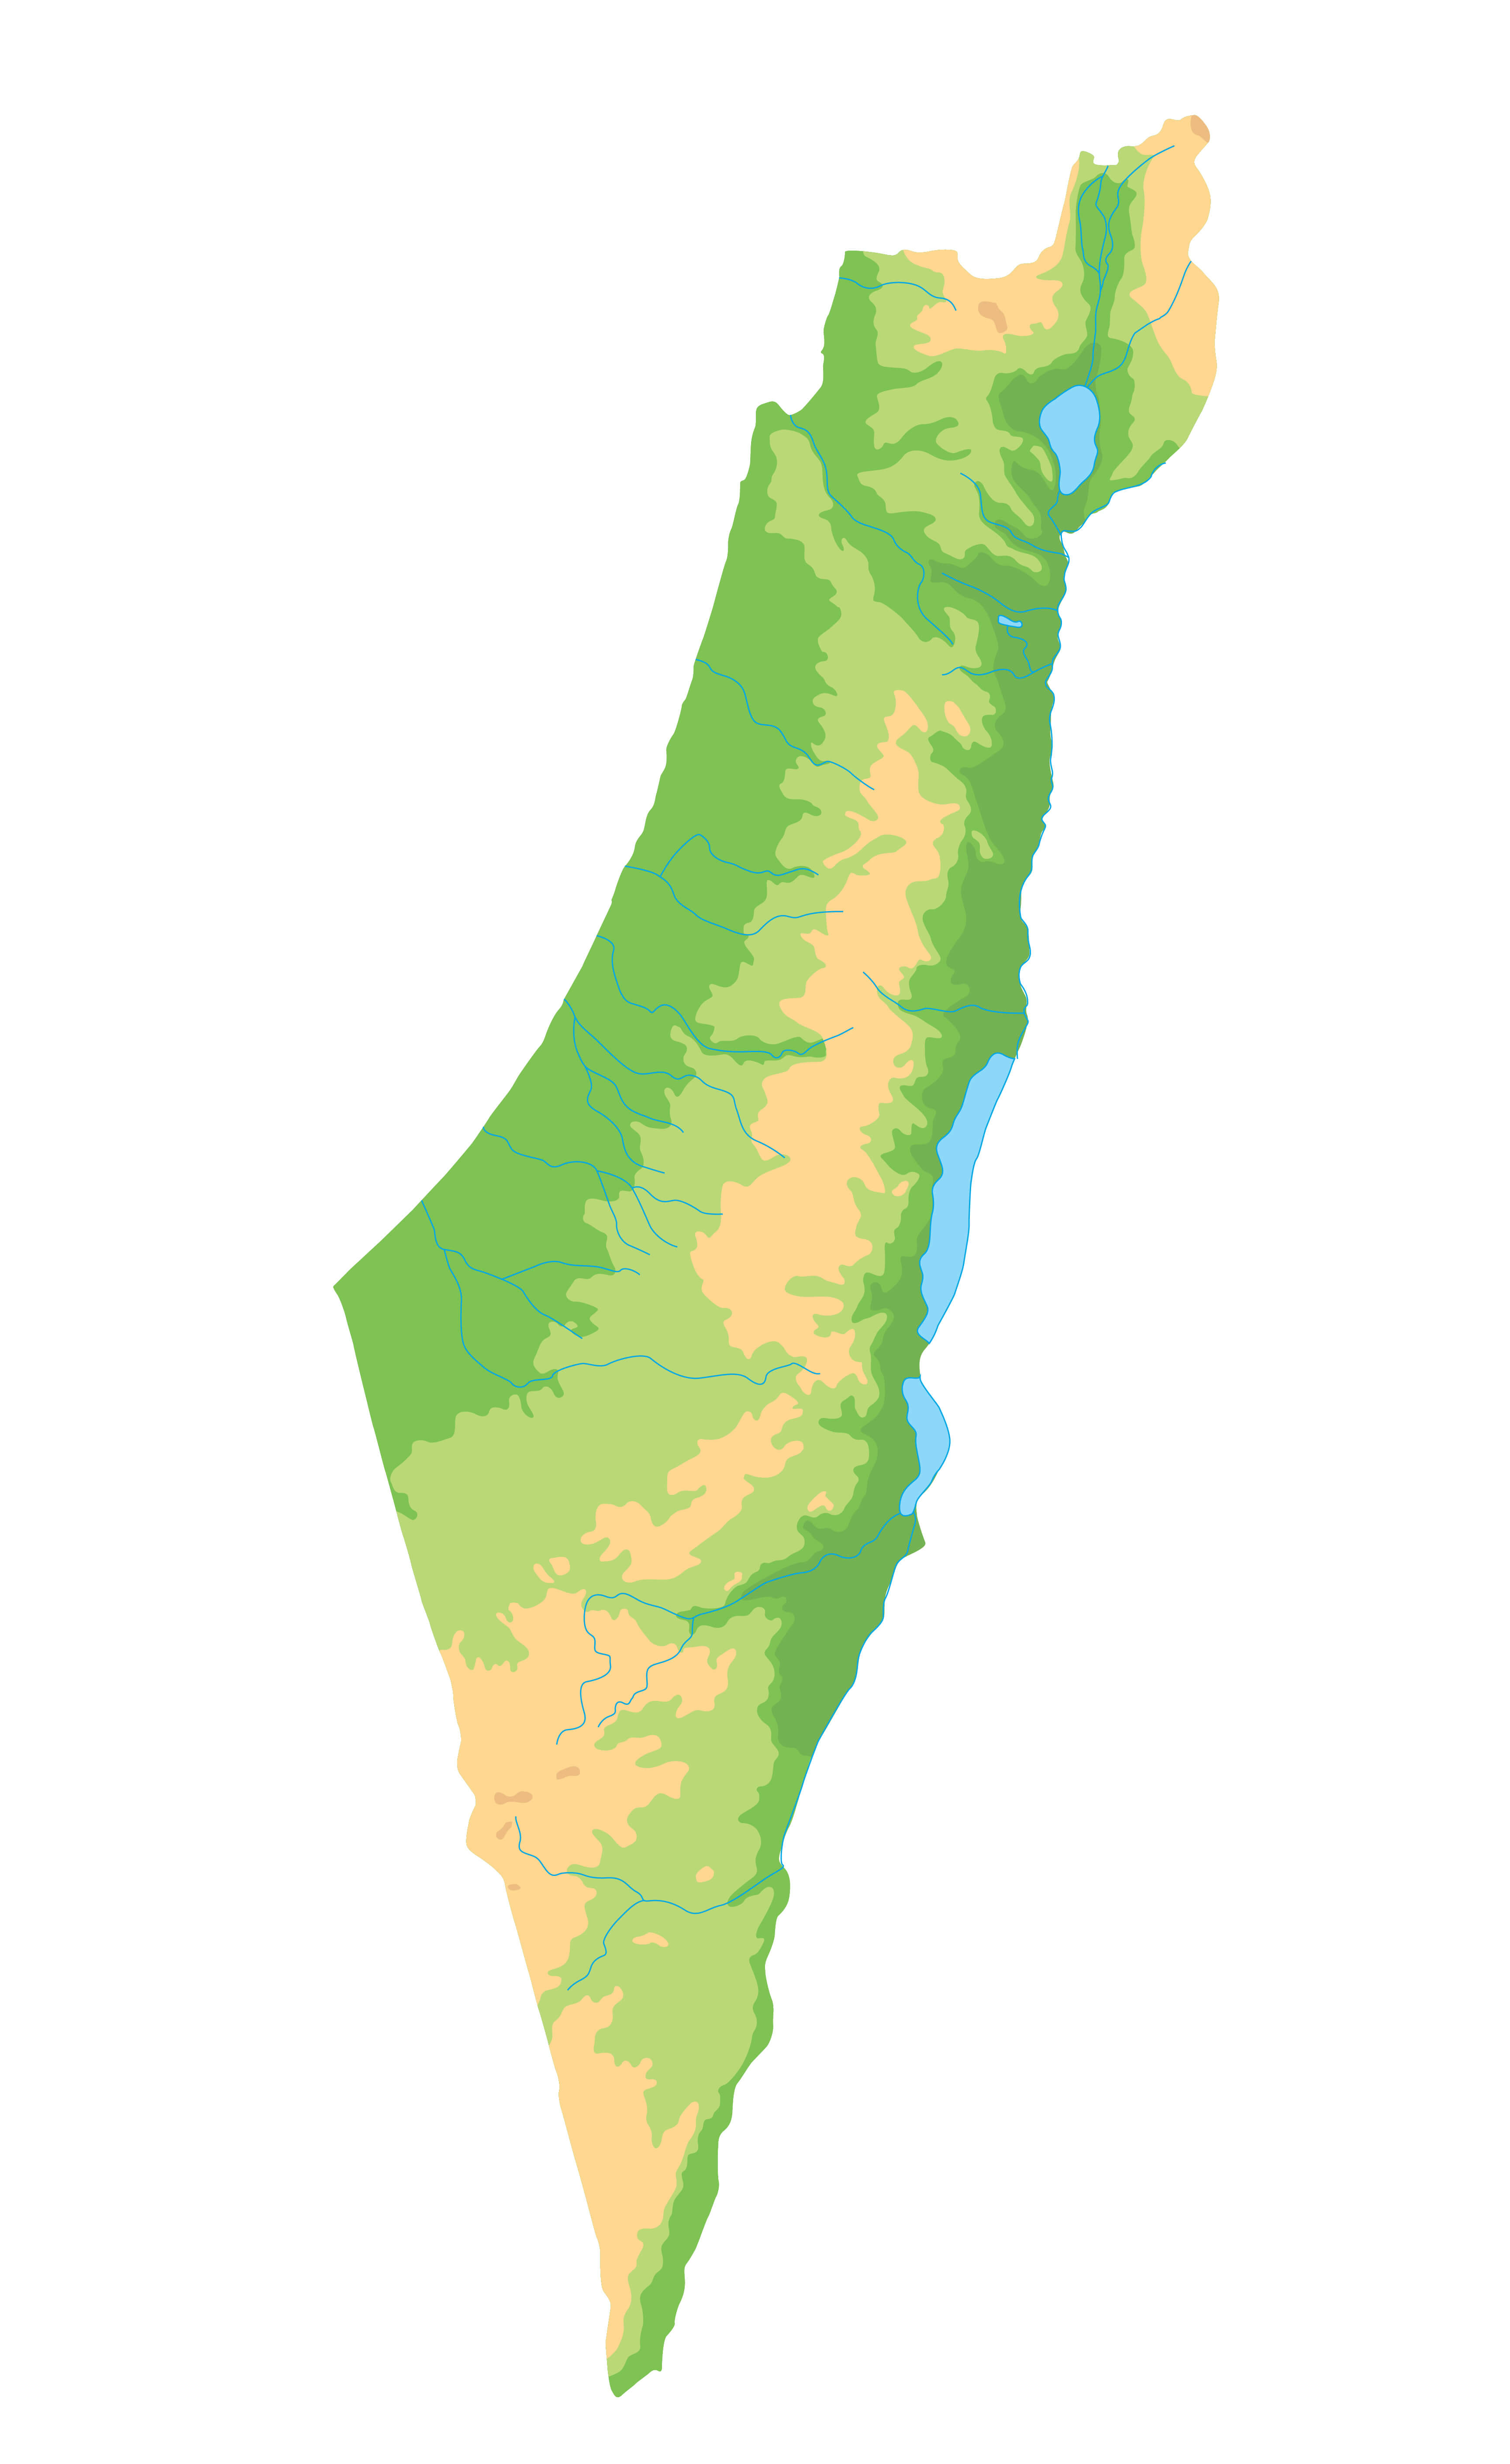 Detailed Israel Physical Map